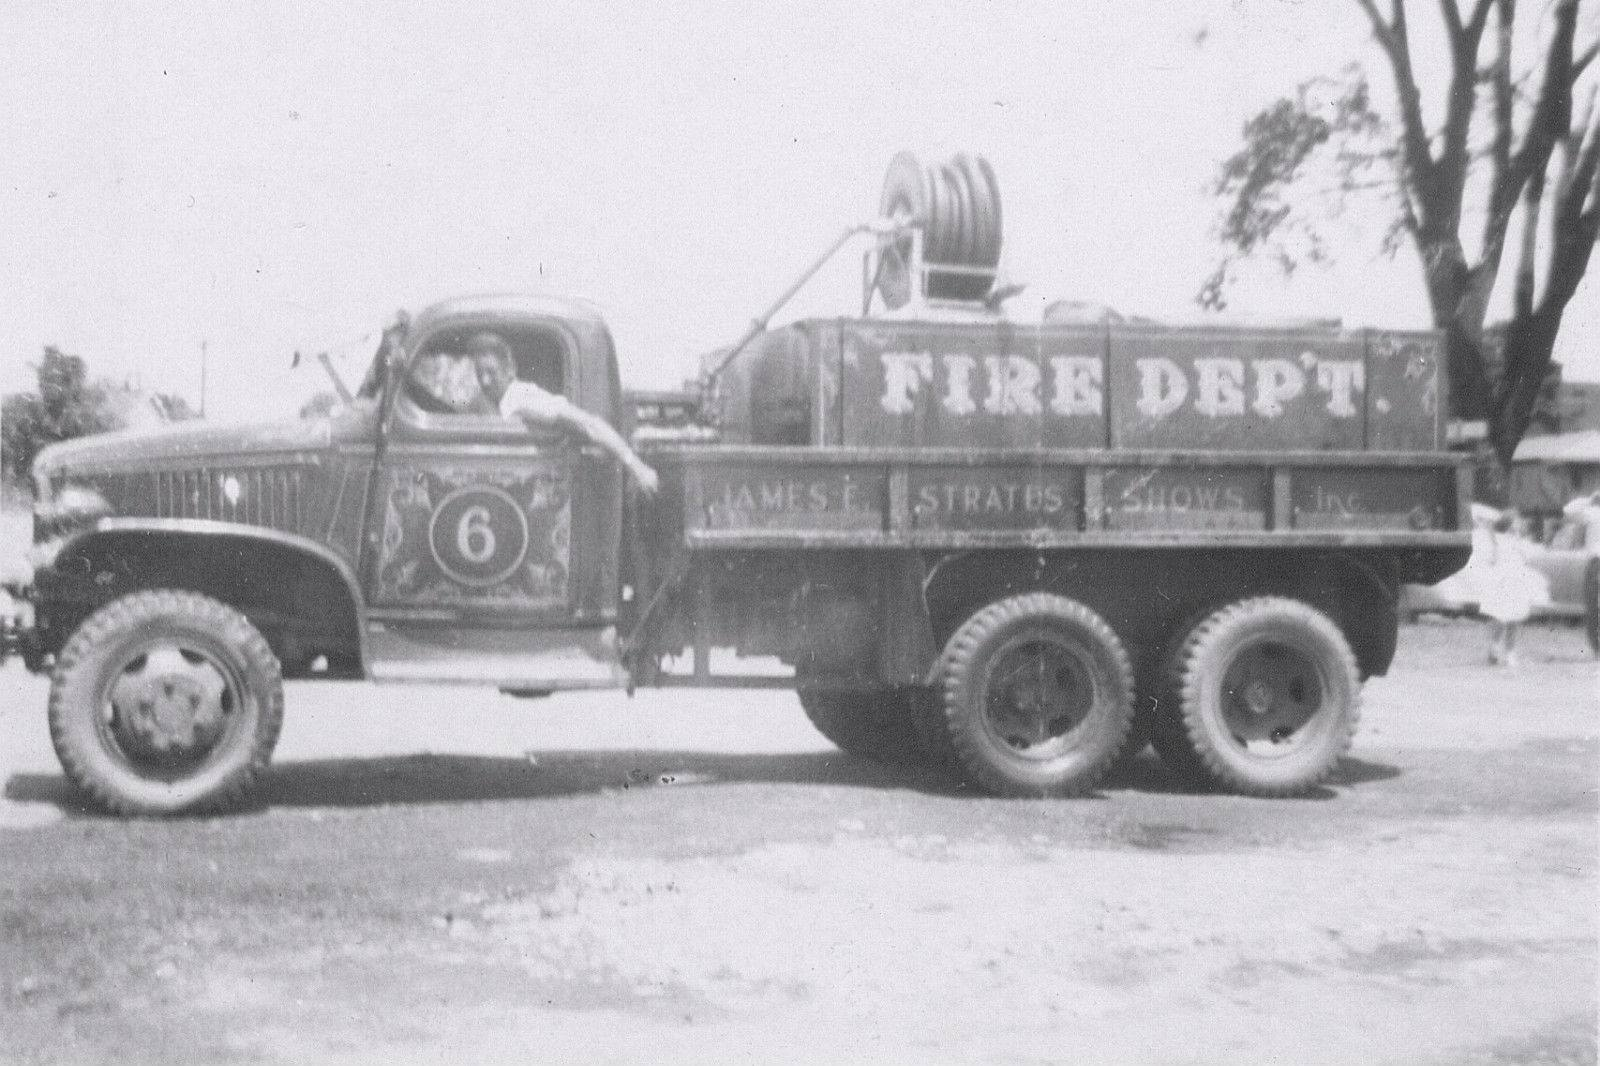 Carnival Shows Had Their Own Fire Department